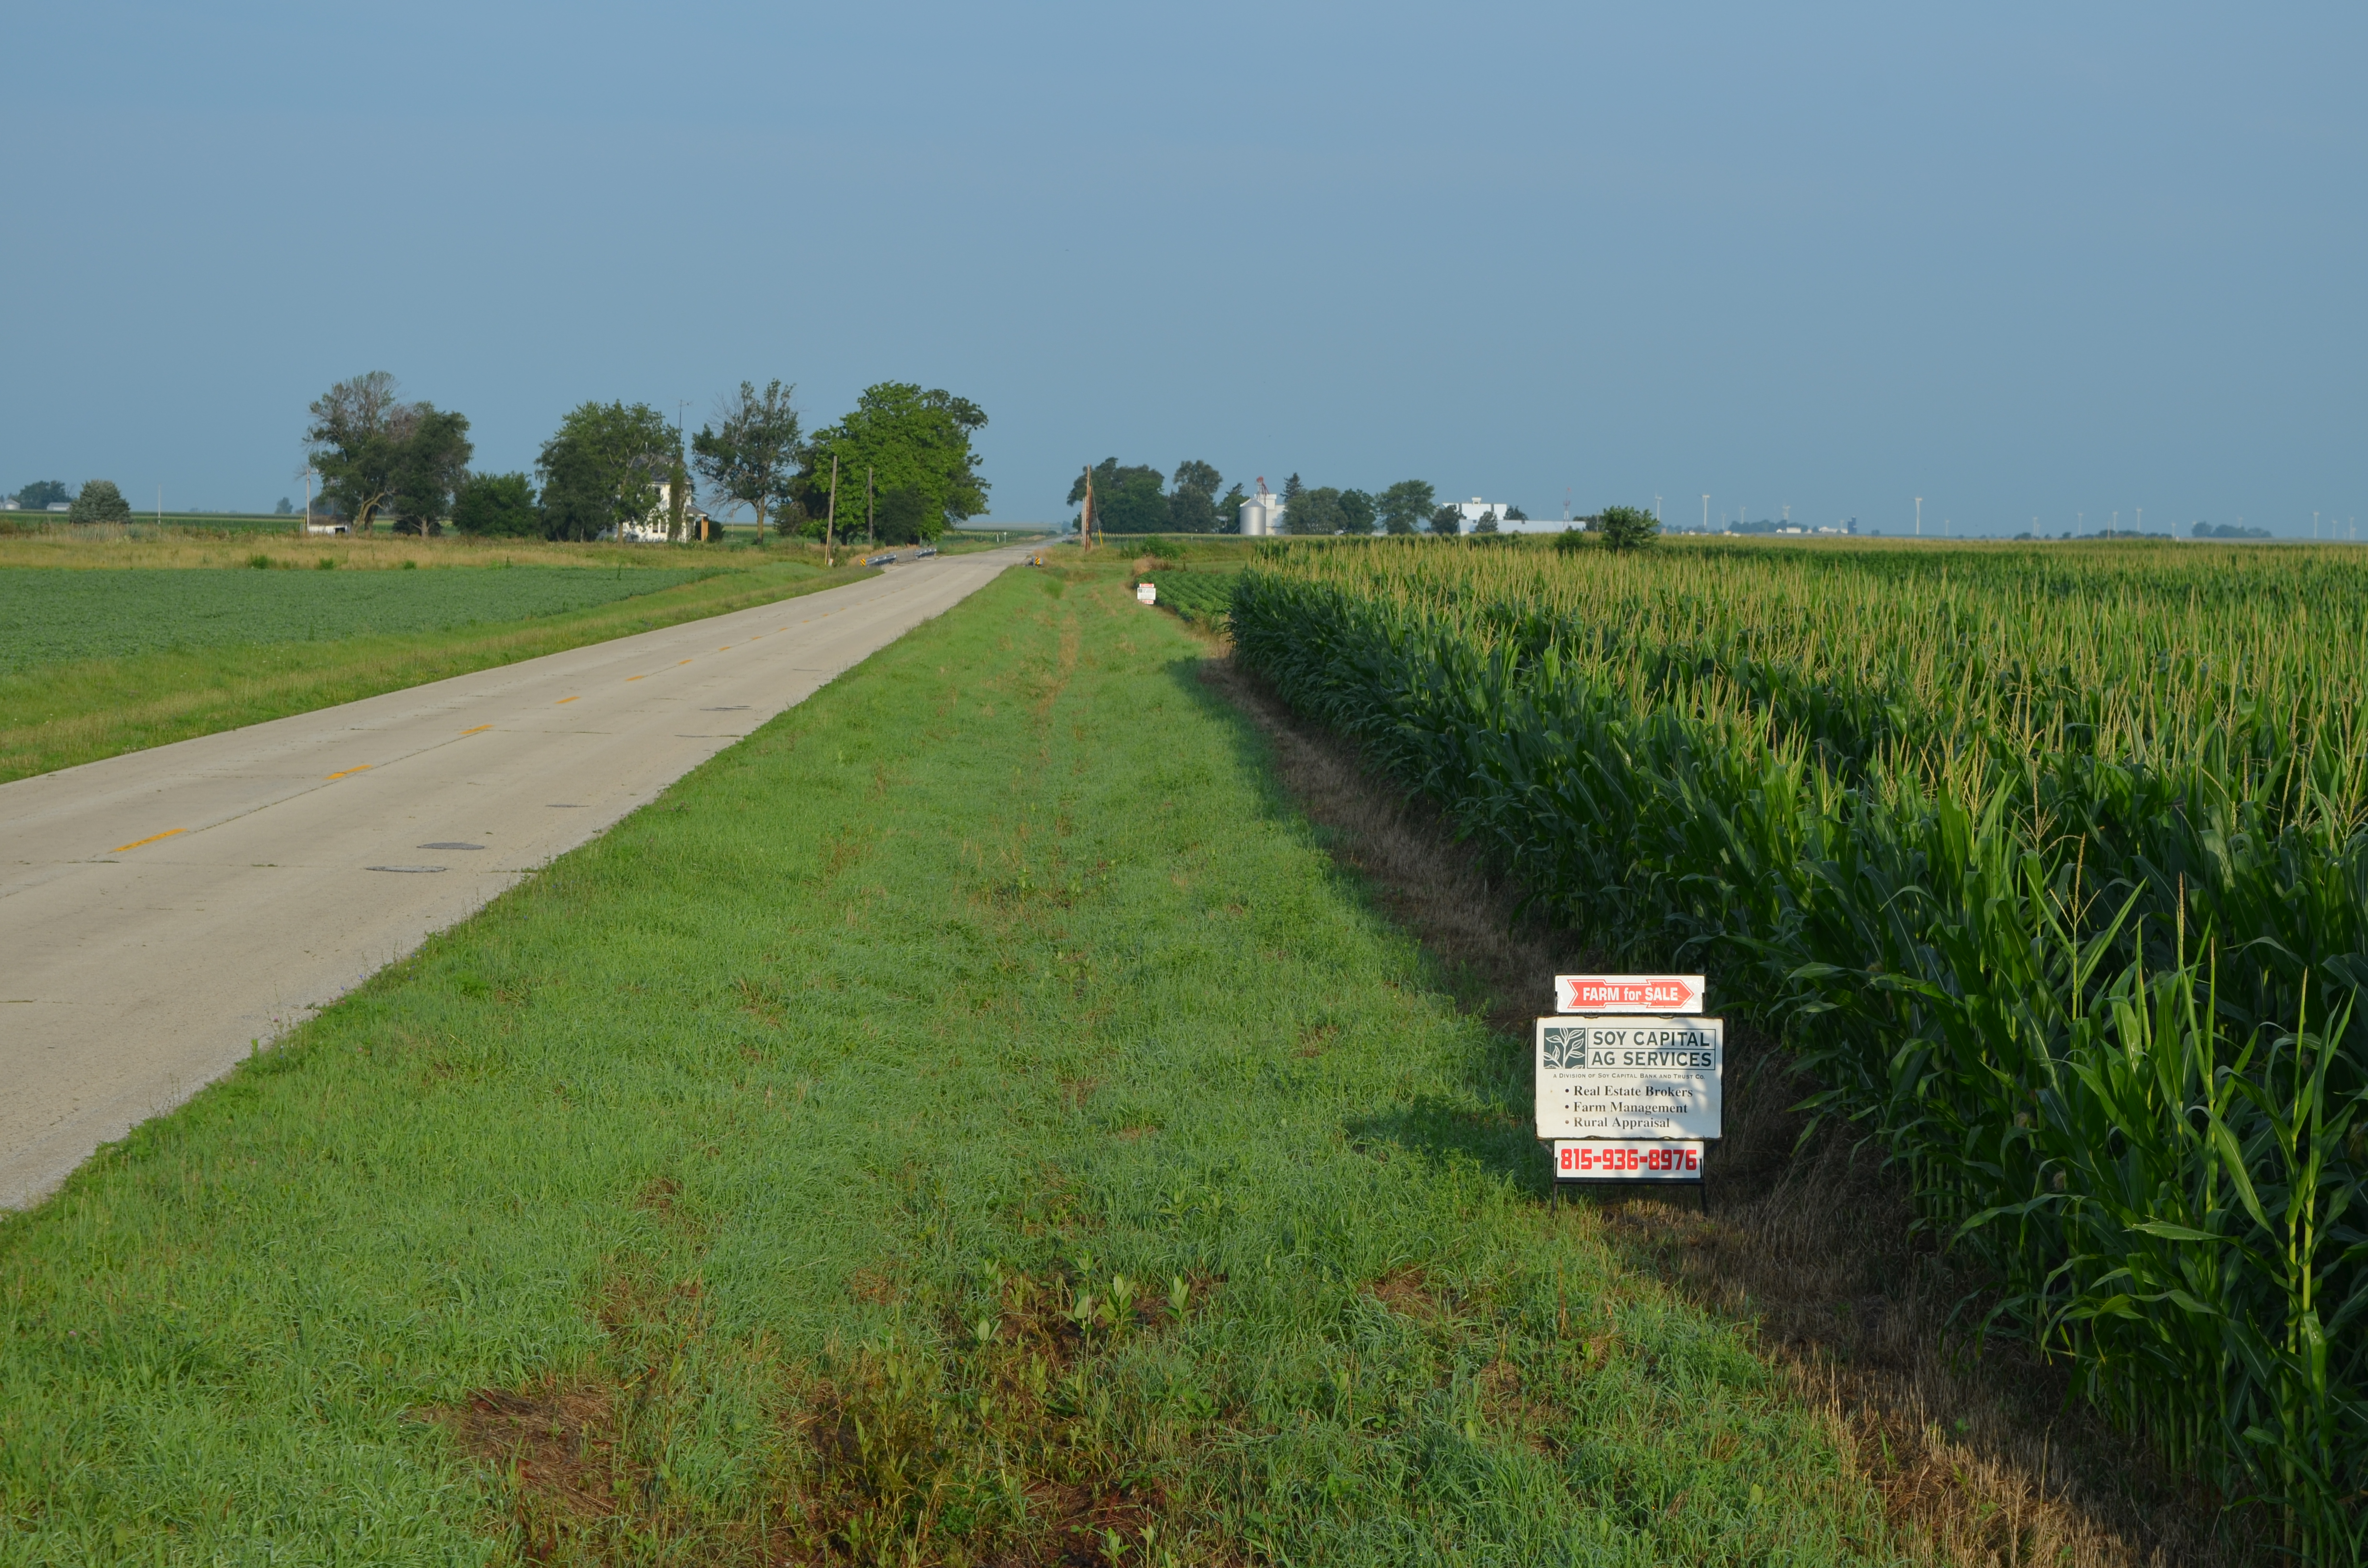 Hendron Farm For Sale Sign